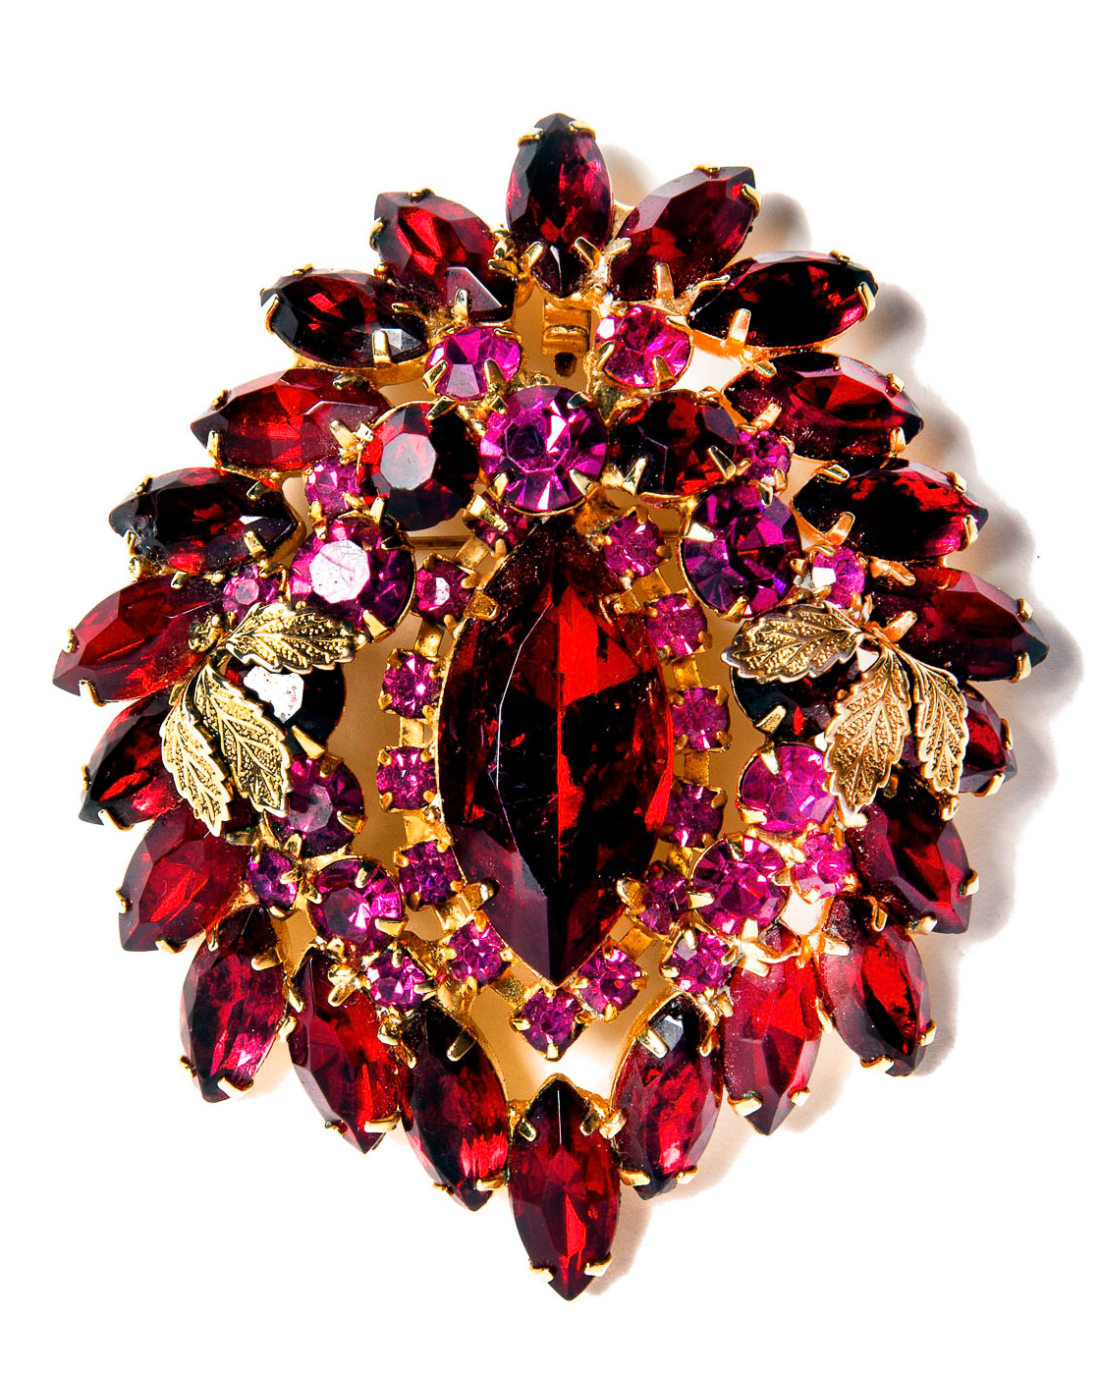 Vintage Haute Red and Fuchsia Floral Brooch Pendant, circa 1960's